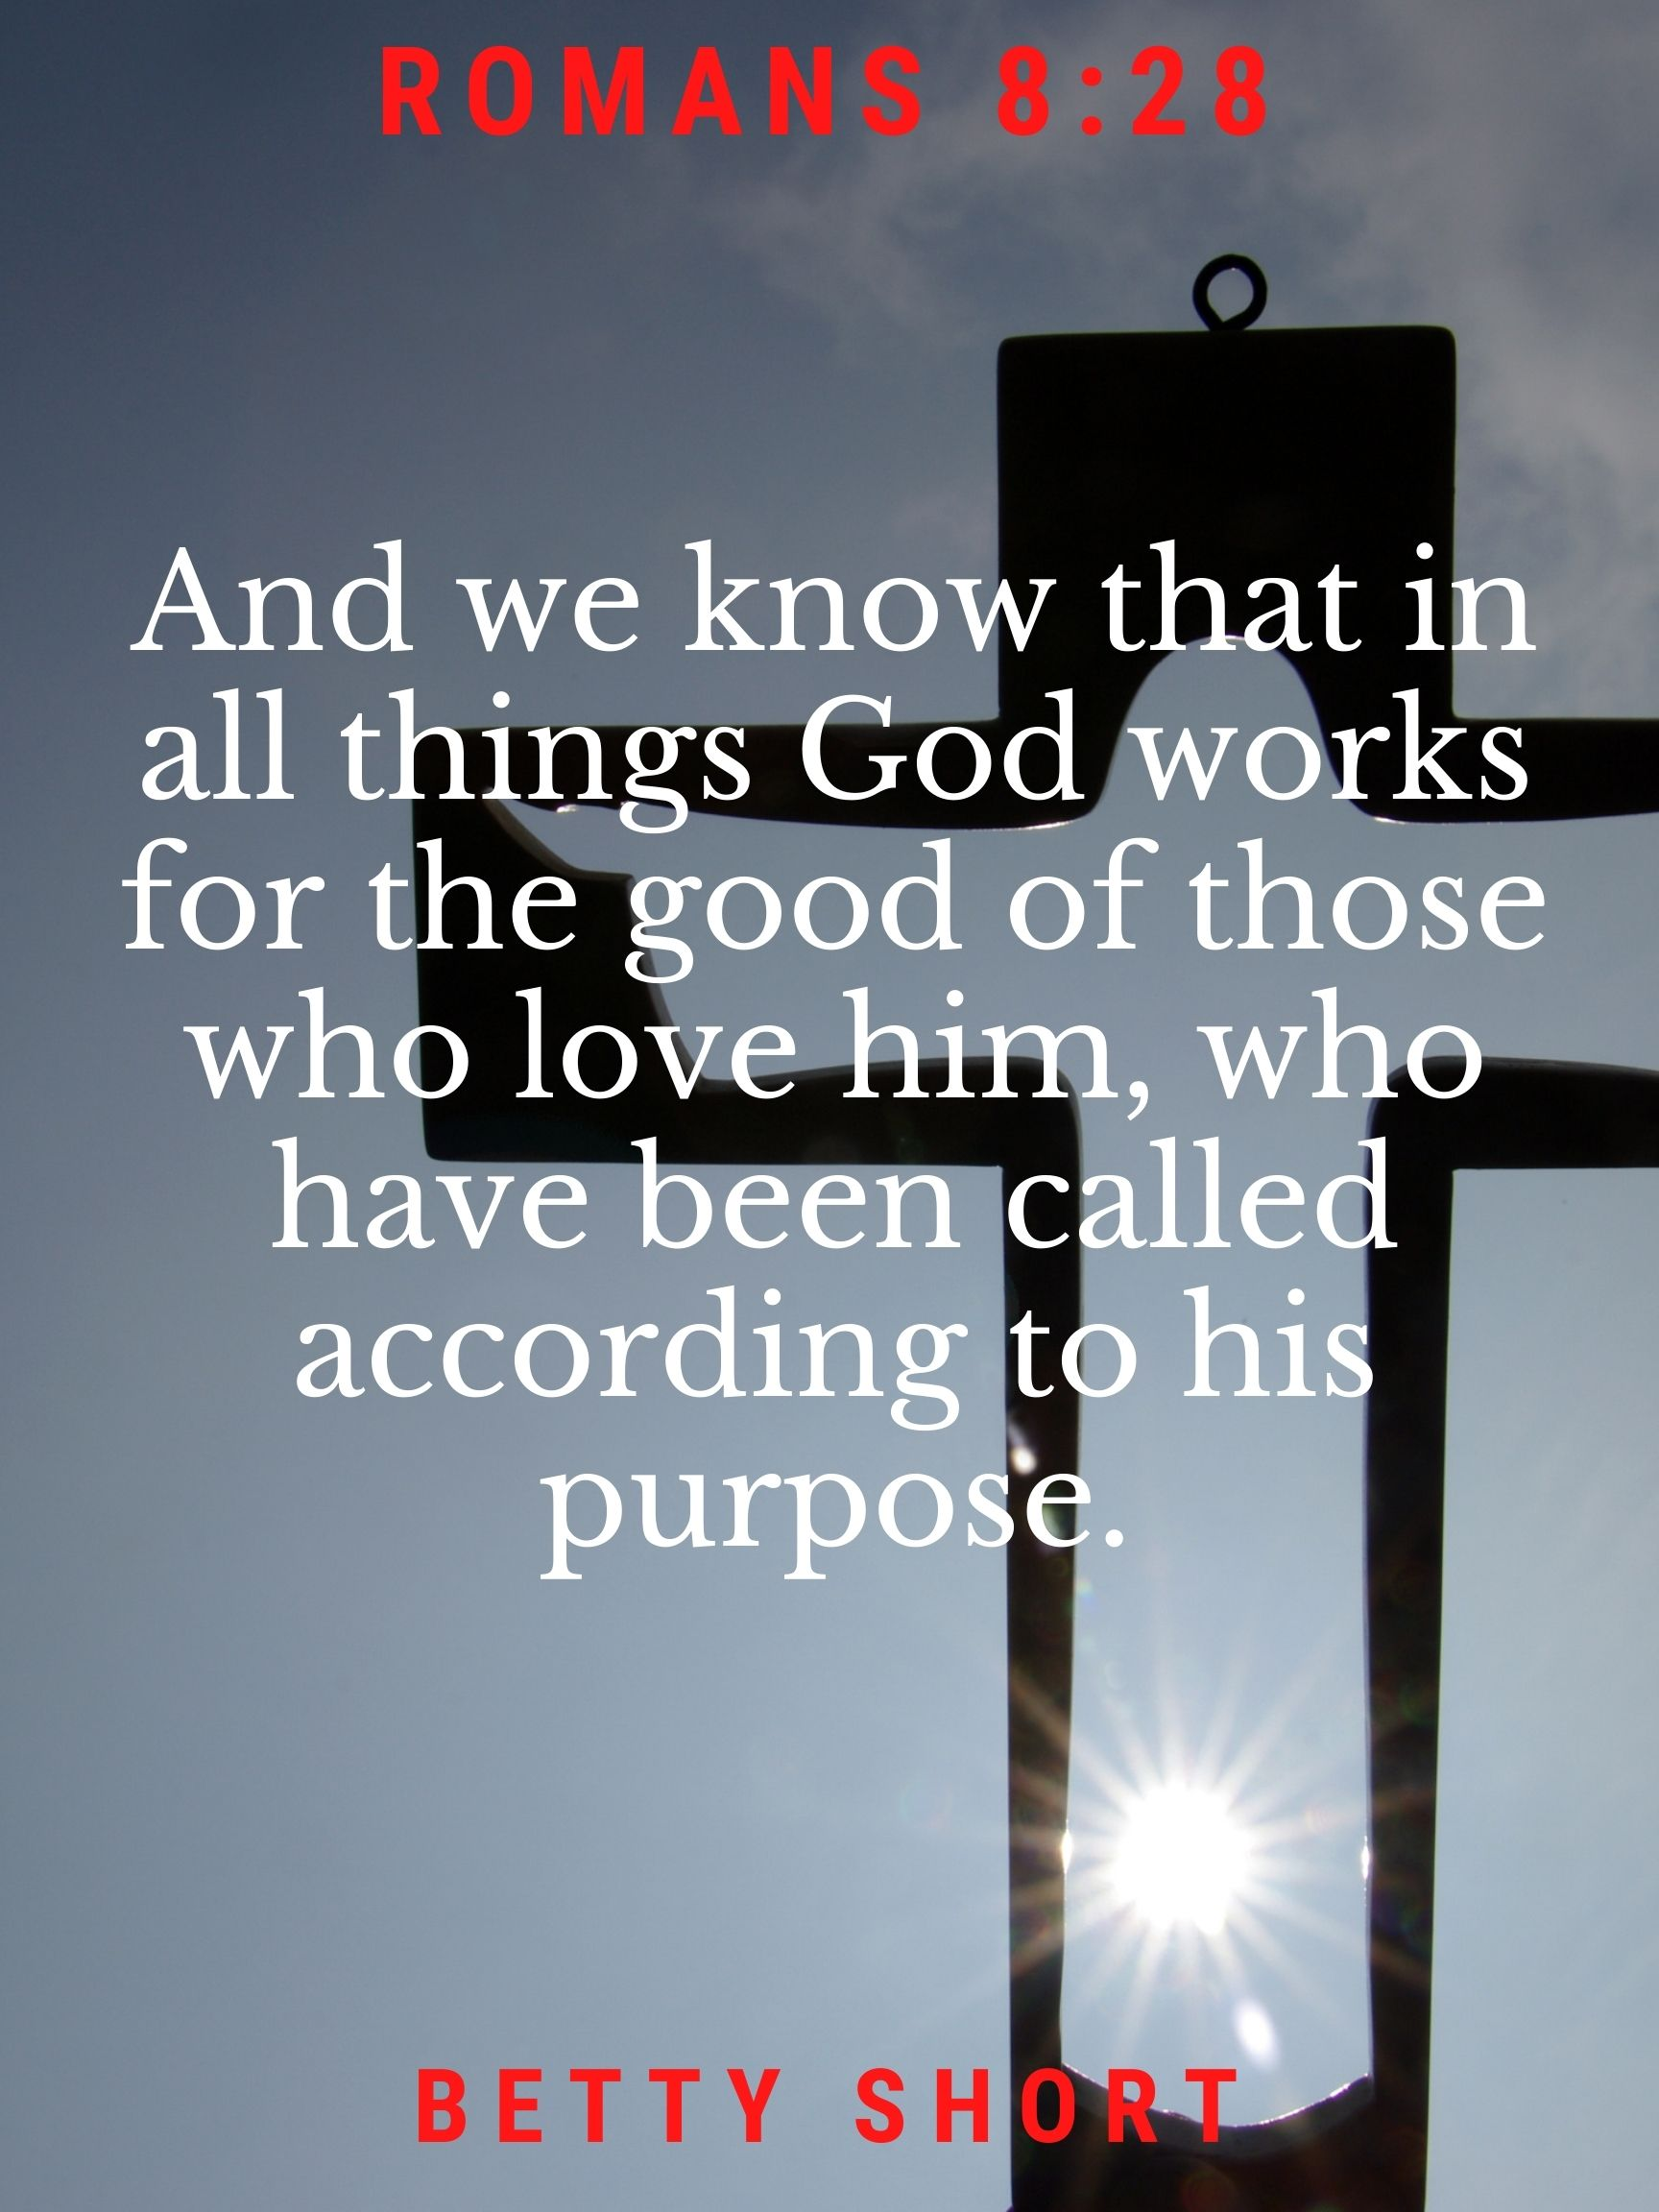 Romans 8:28 And we know that in all things God works for the good of those who love him, who have been called according to his purpose. Betty Short